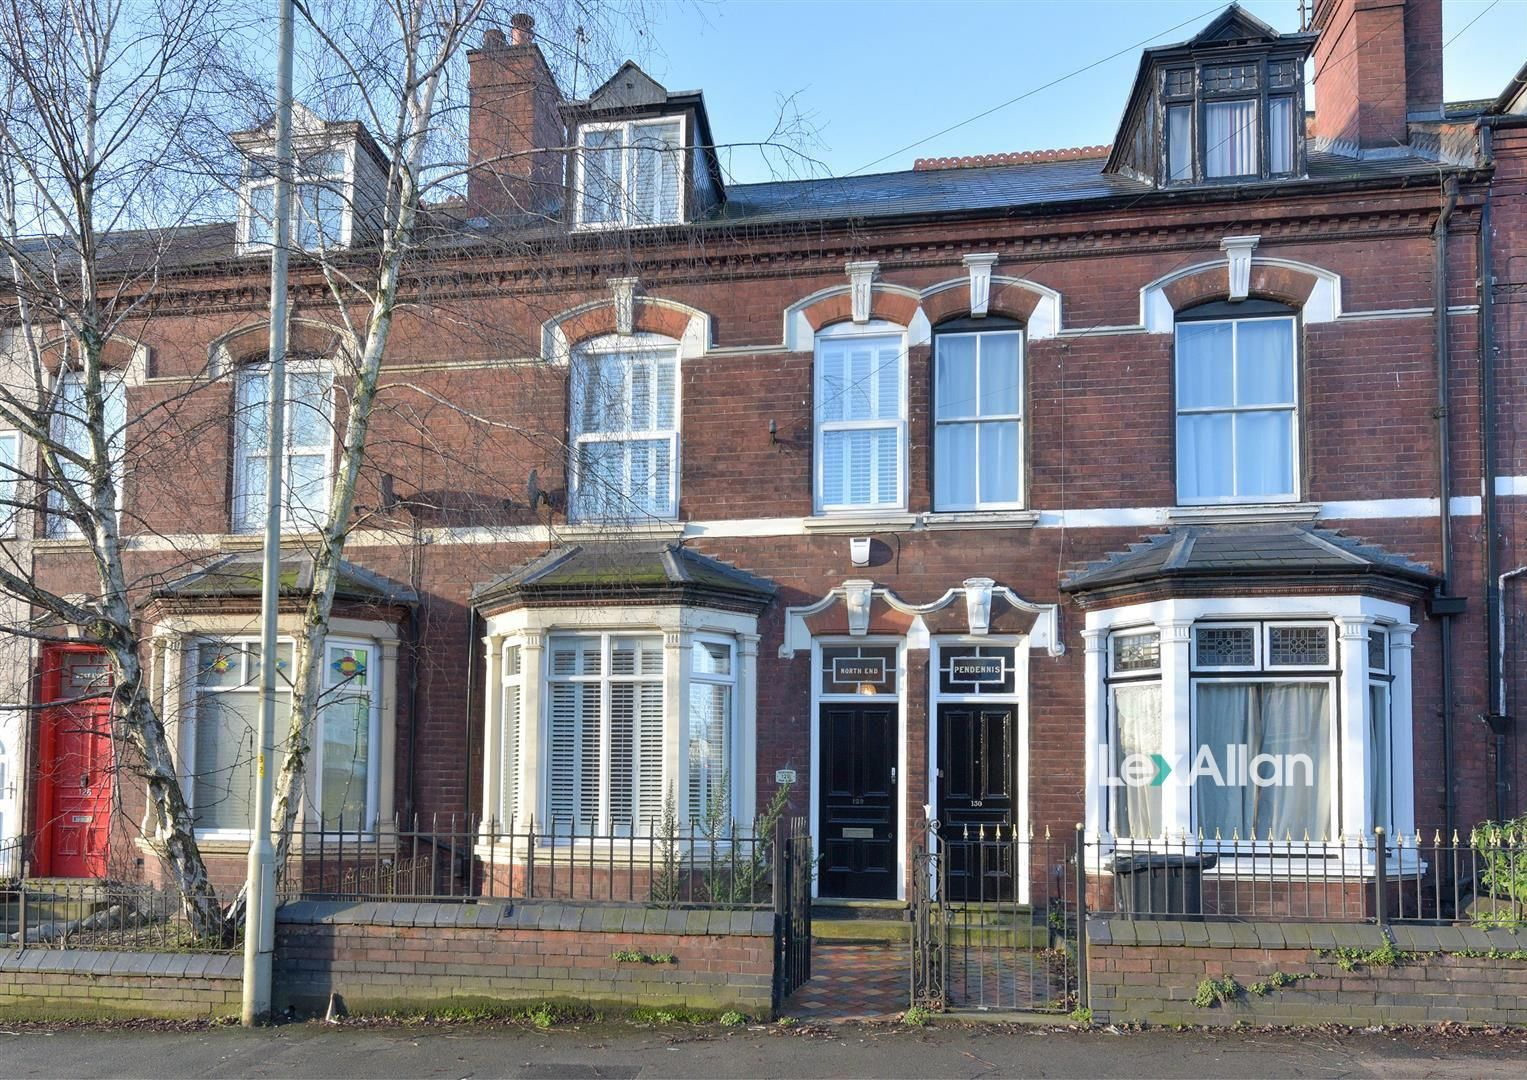 4 bed town-house for sale in Amblecote, DY8